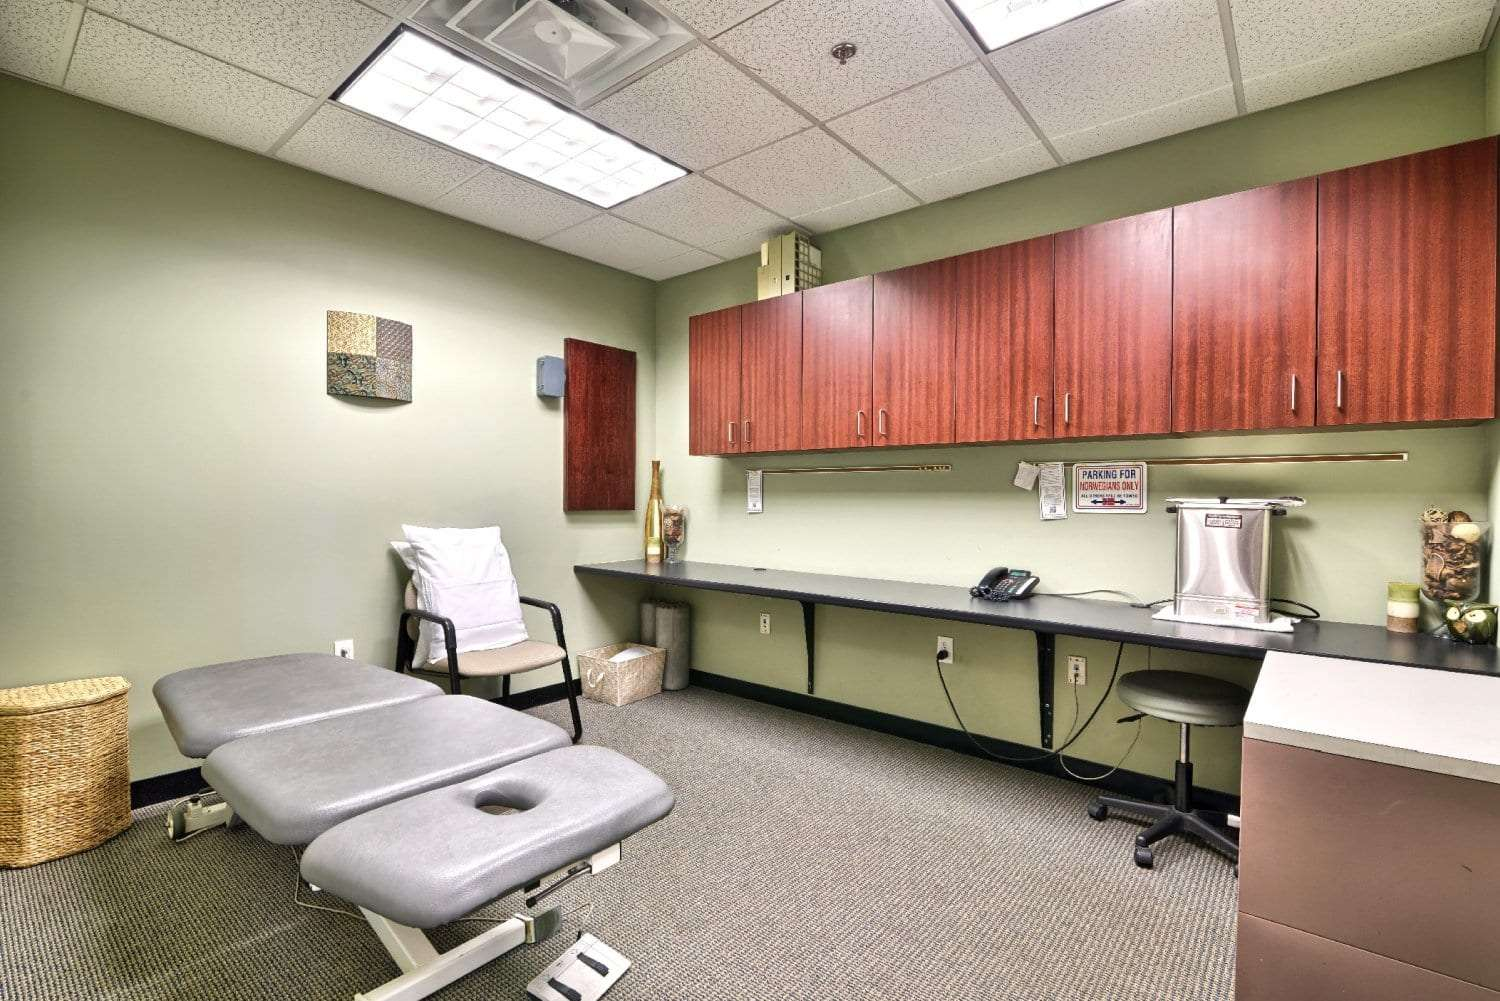 An image of the interior of a patient room at our physical therapy clinic in Woburn, Massachusetts.